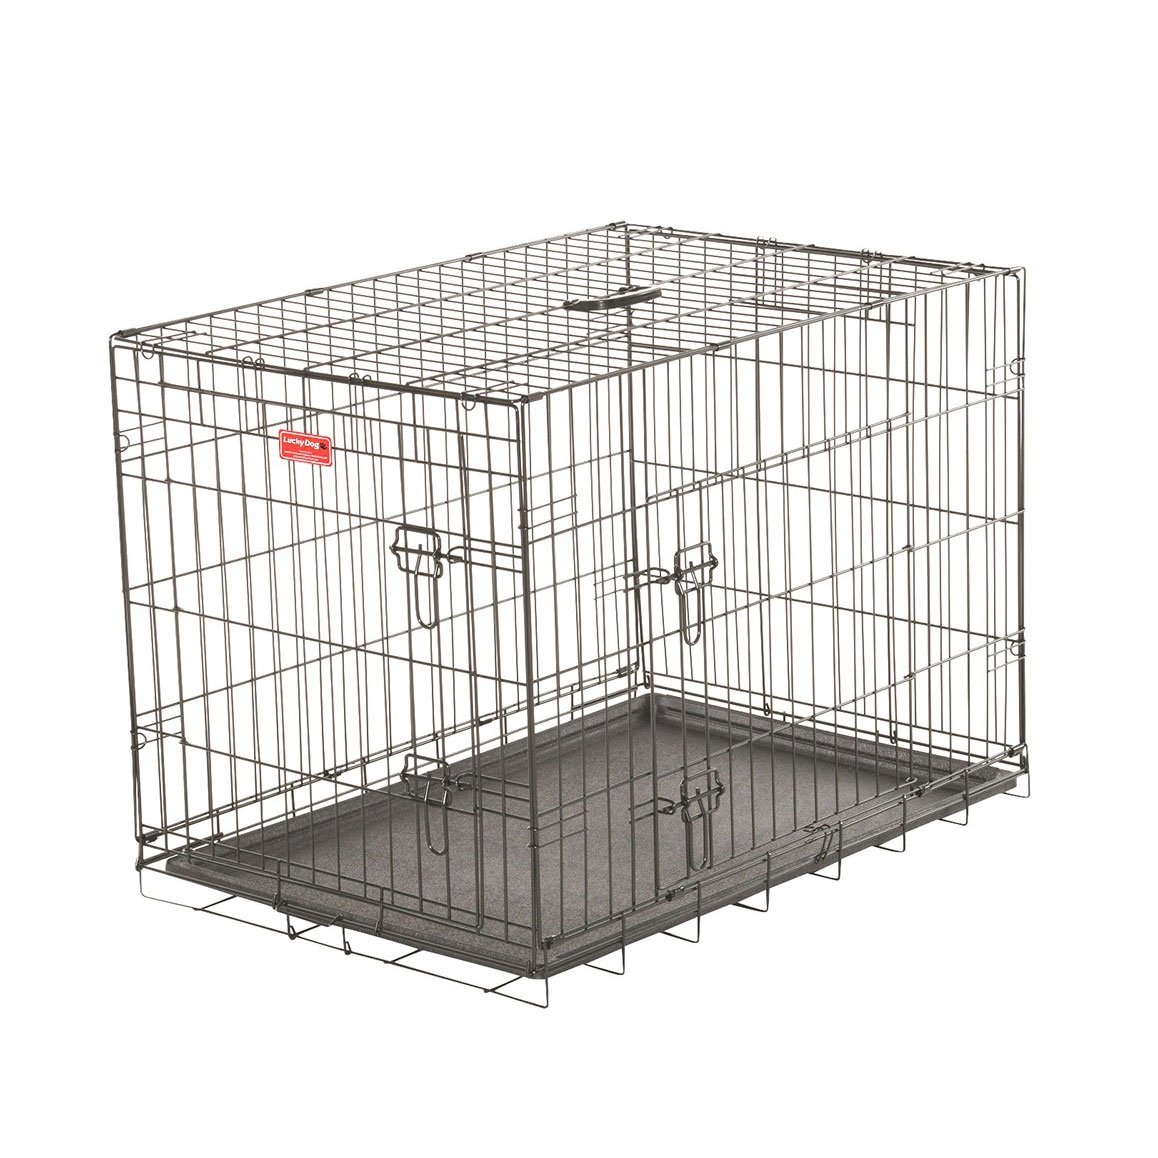 Lucky Dog 2 Door Dog Kennel (24-inch) by Lucky Dog (Image #6)